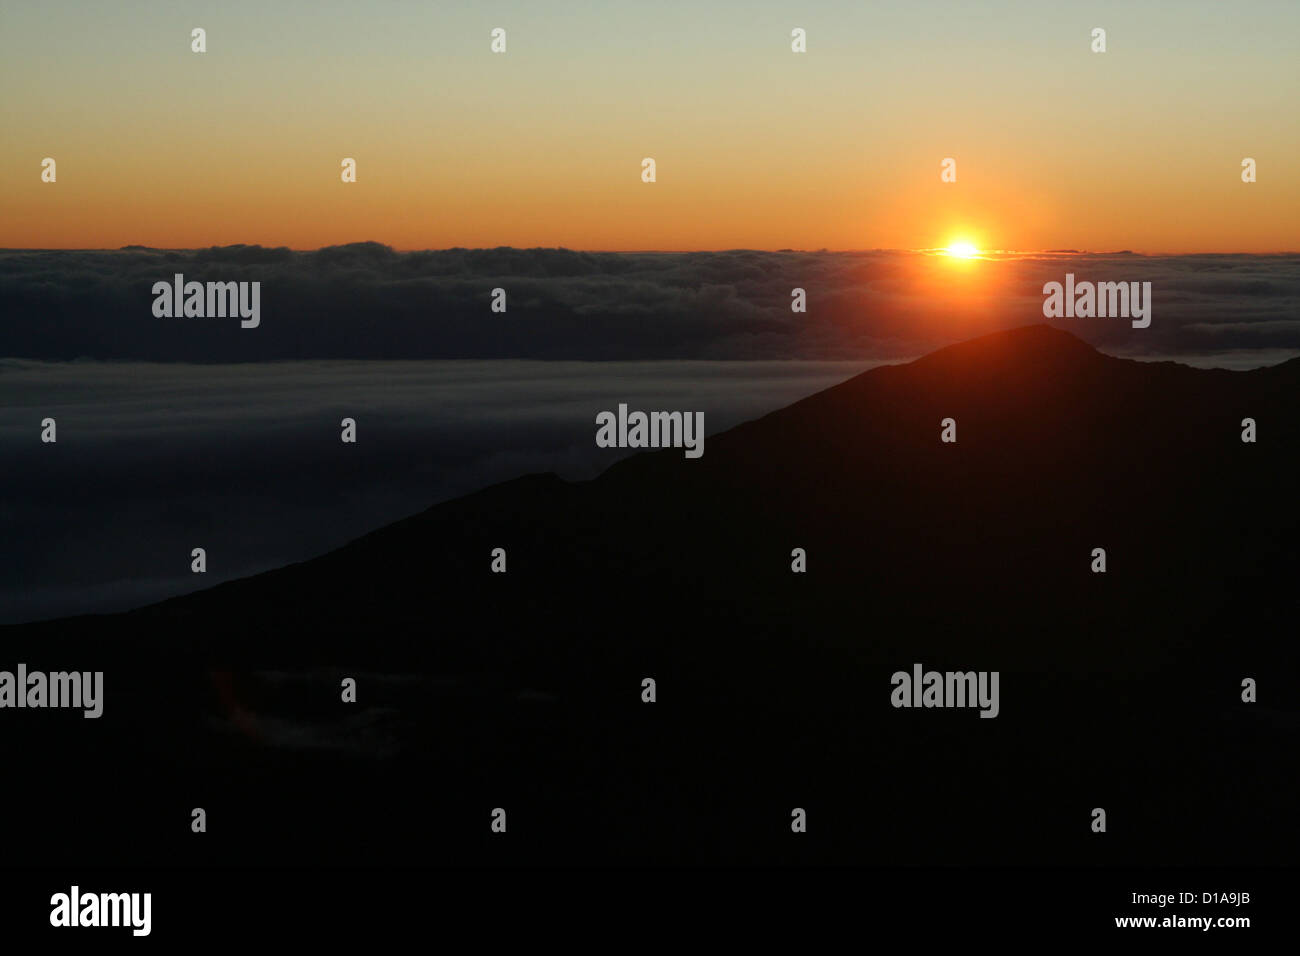 Sunrise over the clouds from Haleakala volcano, Maui, Hawaii Stock Photo